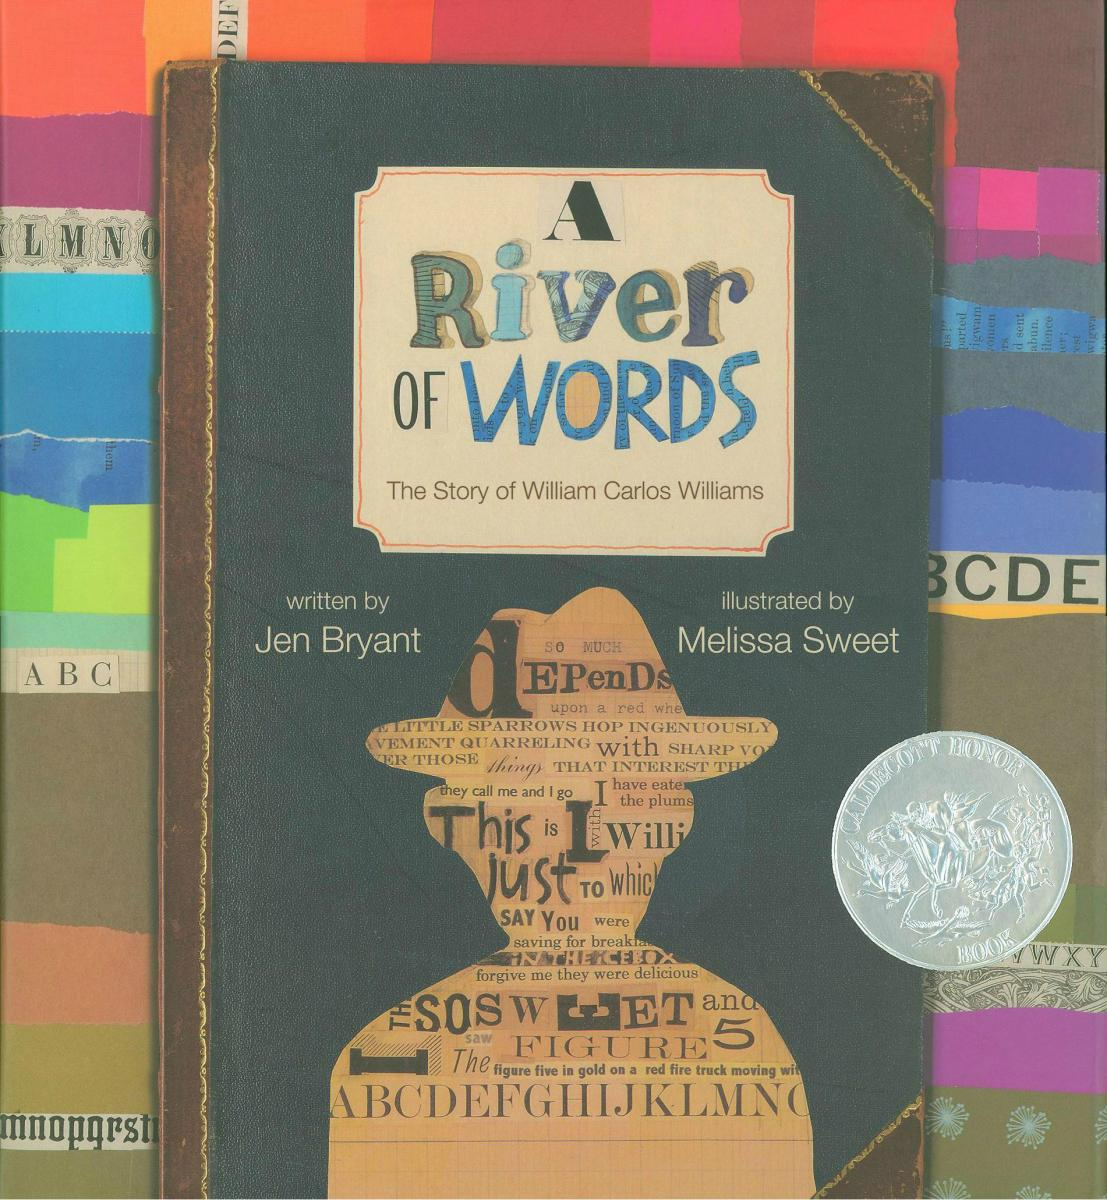 A River of Words: The Story of William Carlos Williams - book cover image